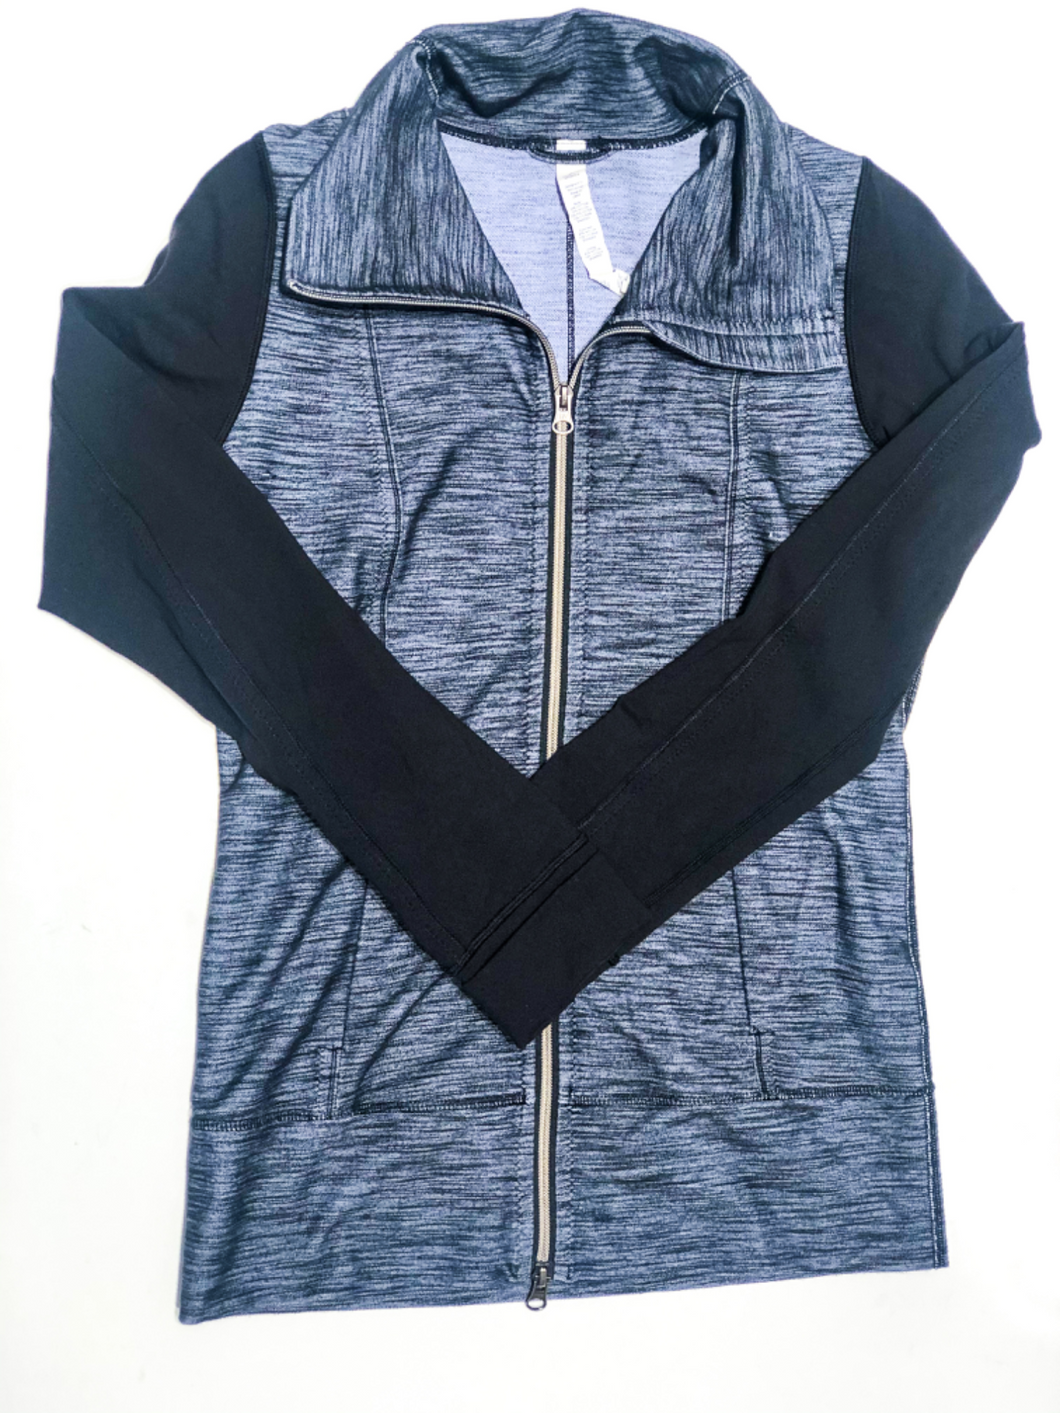 Lululemon Athletica Athletic Jacket Size S 6